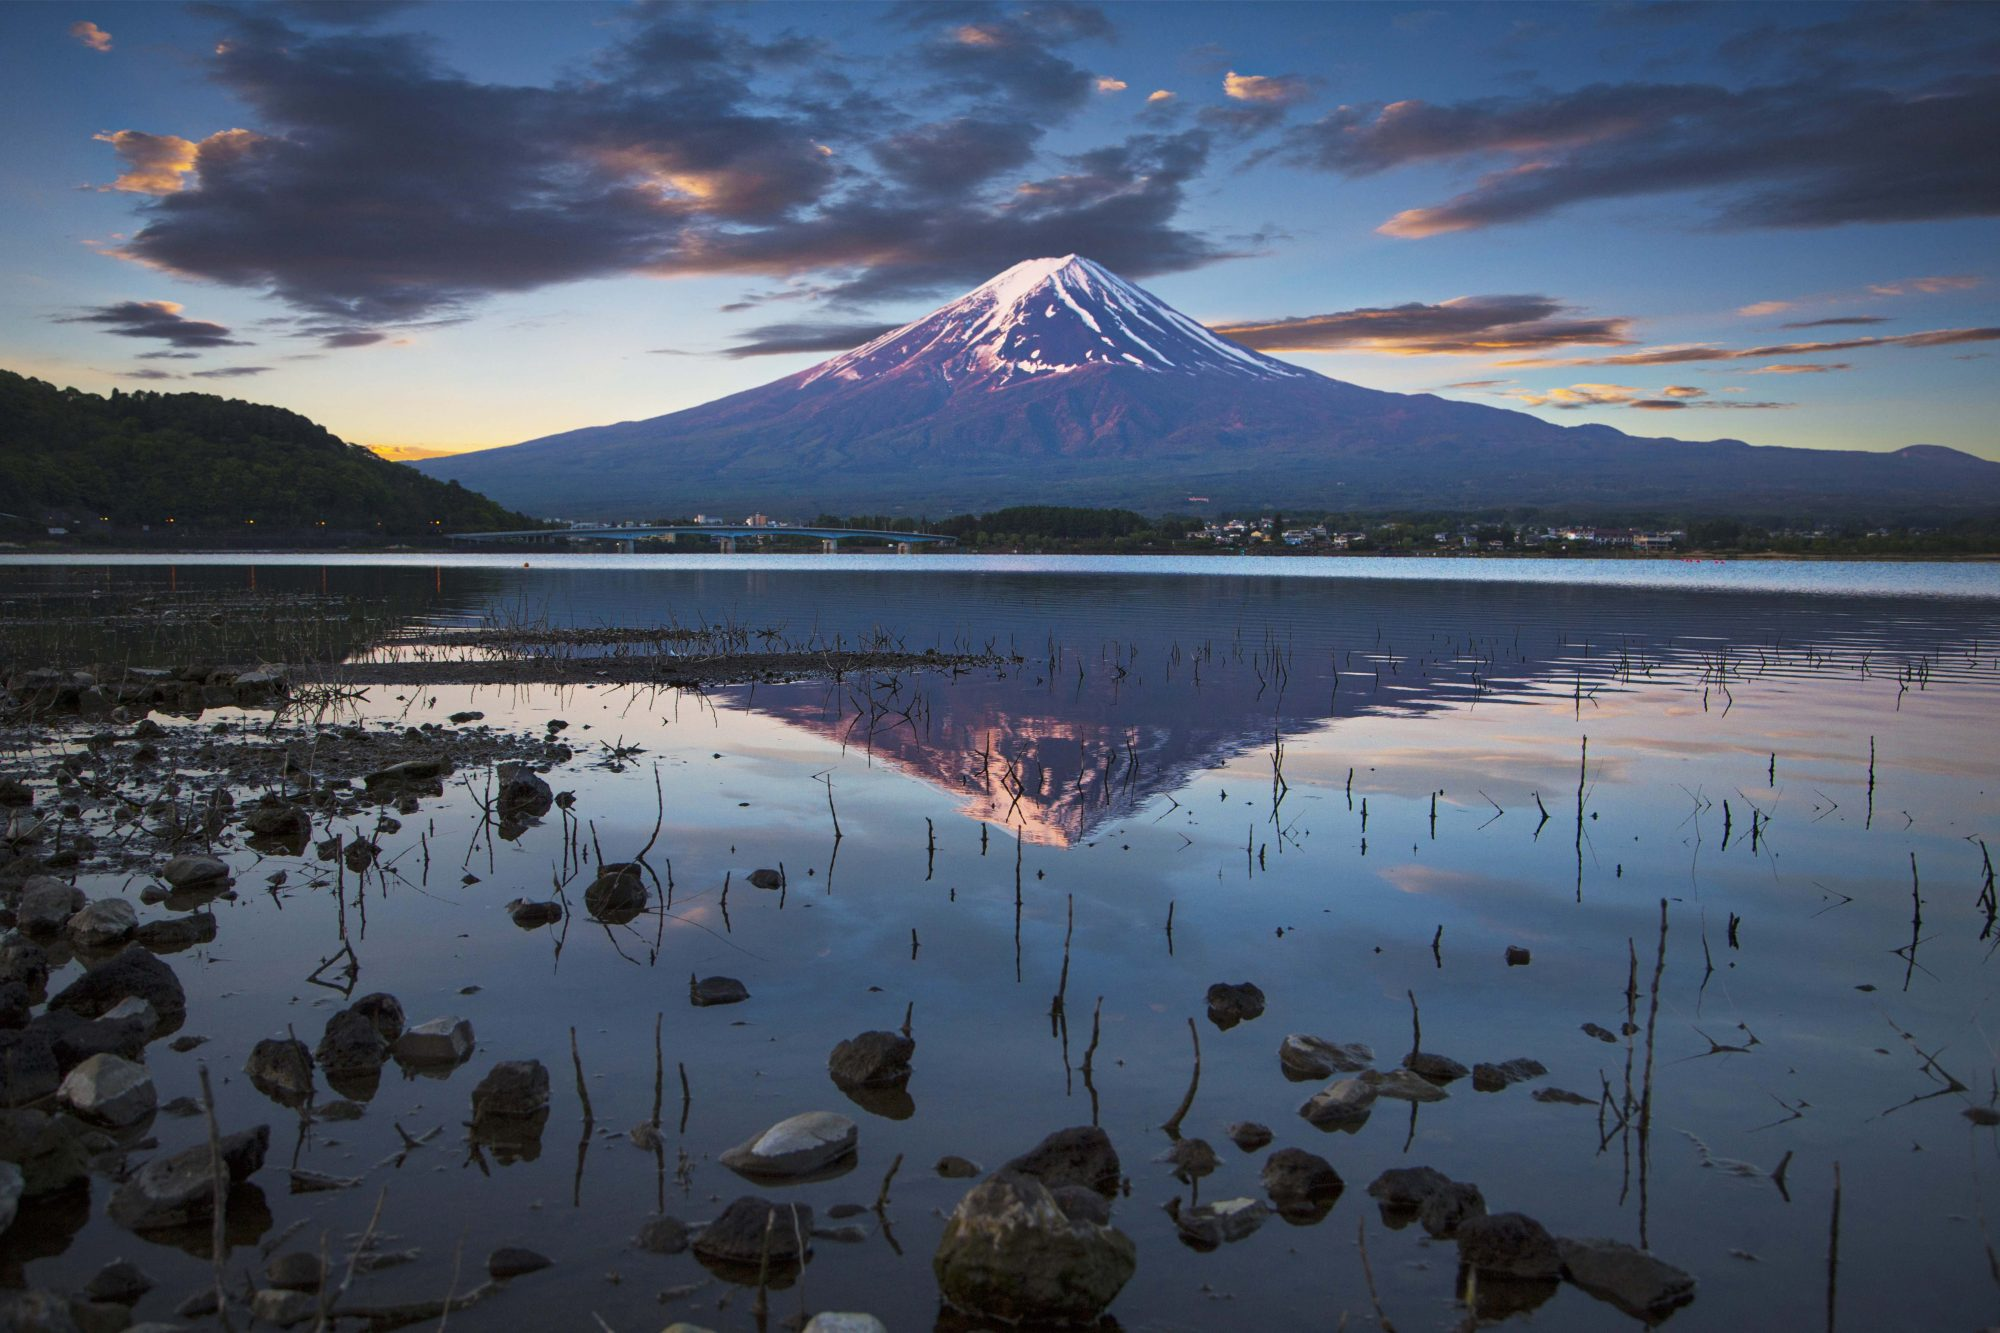 Climate change may be endangering Volcanoes' cooling effect